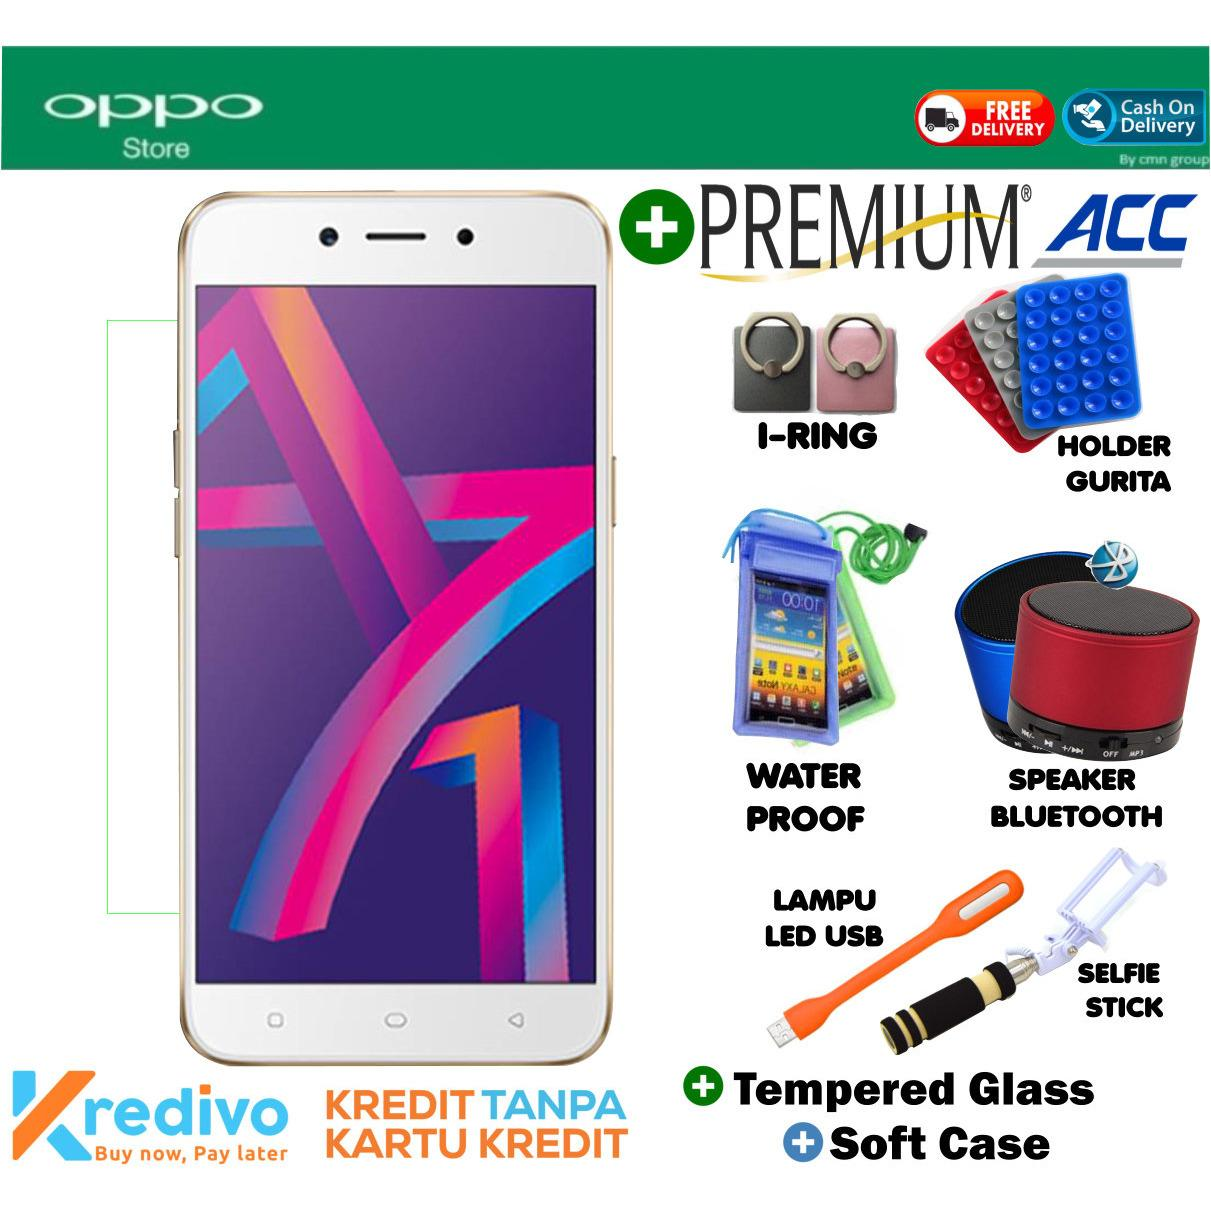 OPPO A71 3GB/32GB PLus Premuim Accecories Menarik Original